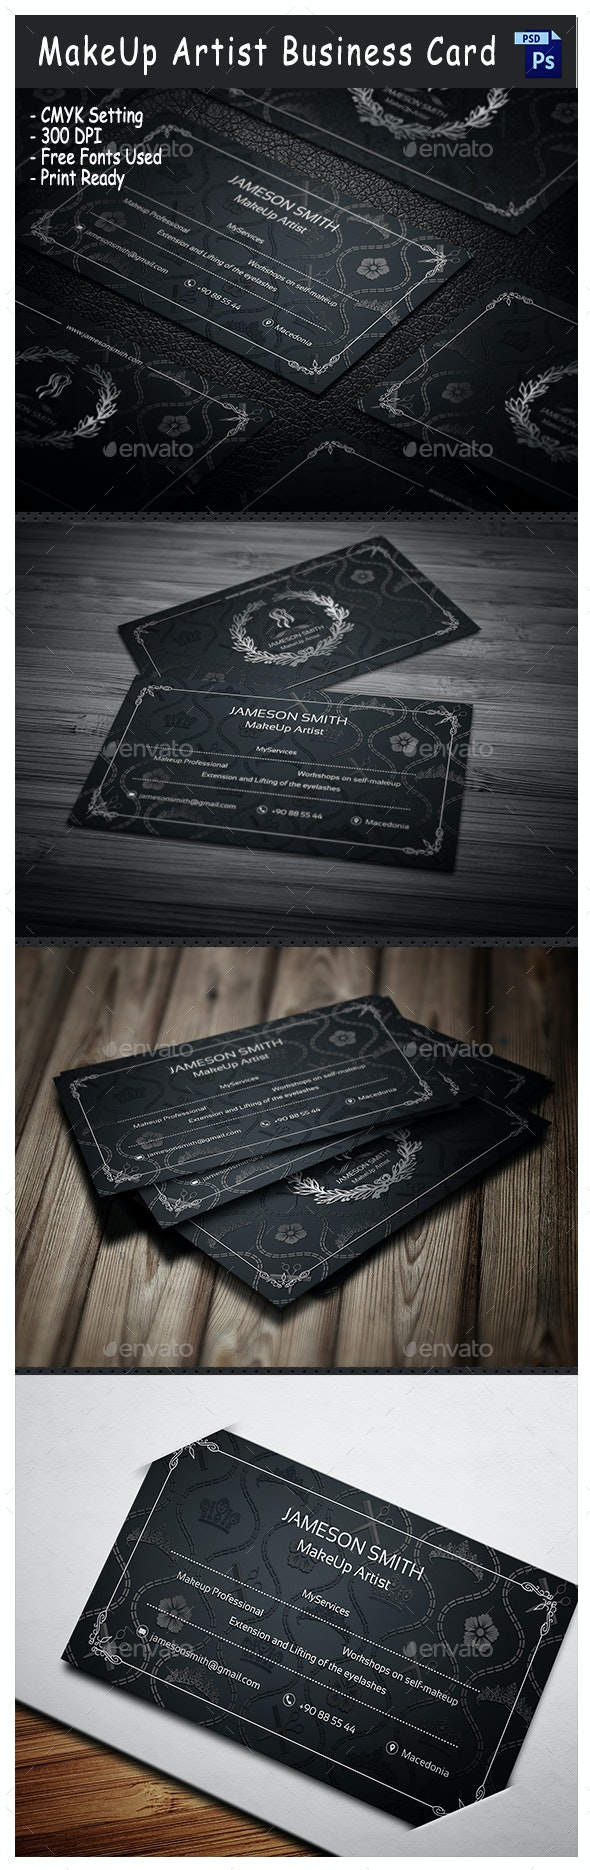 MakeUp Artist Business Card - Industry Specific Business Cards